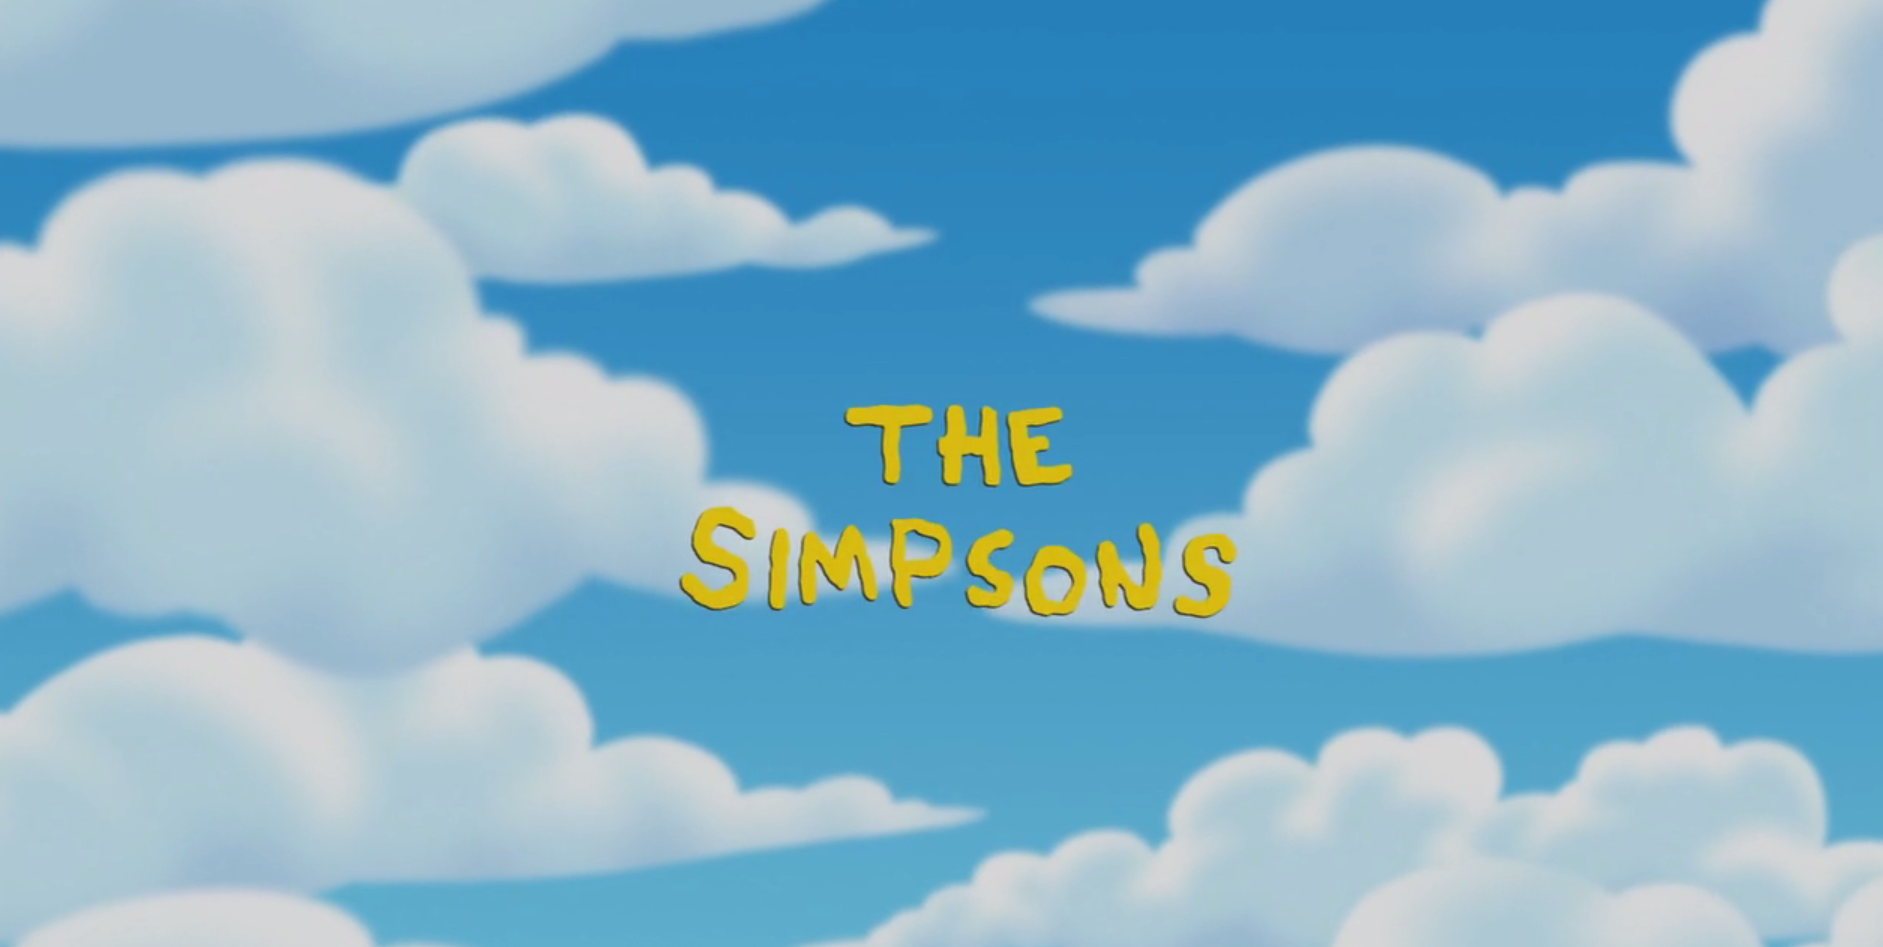 The-Simpsons-Title